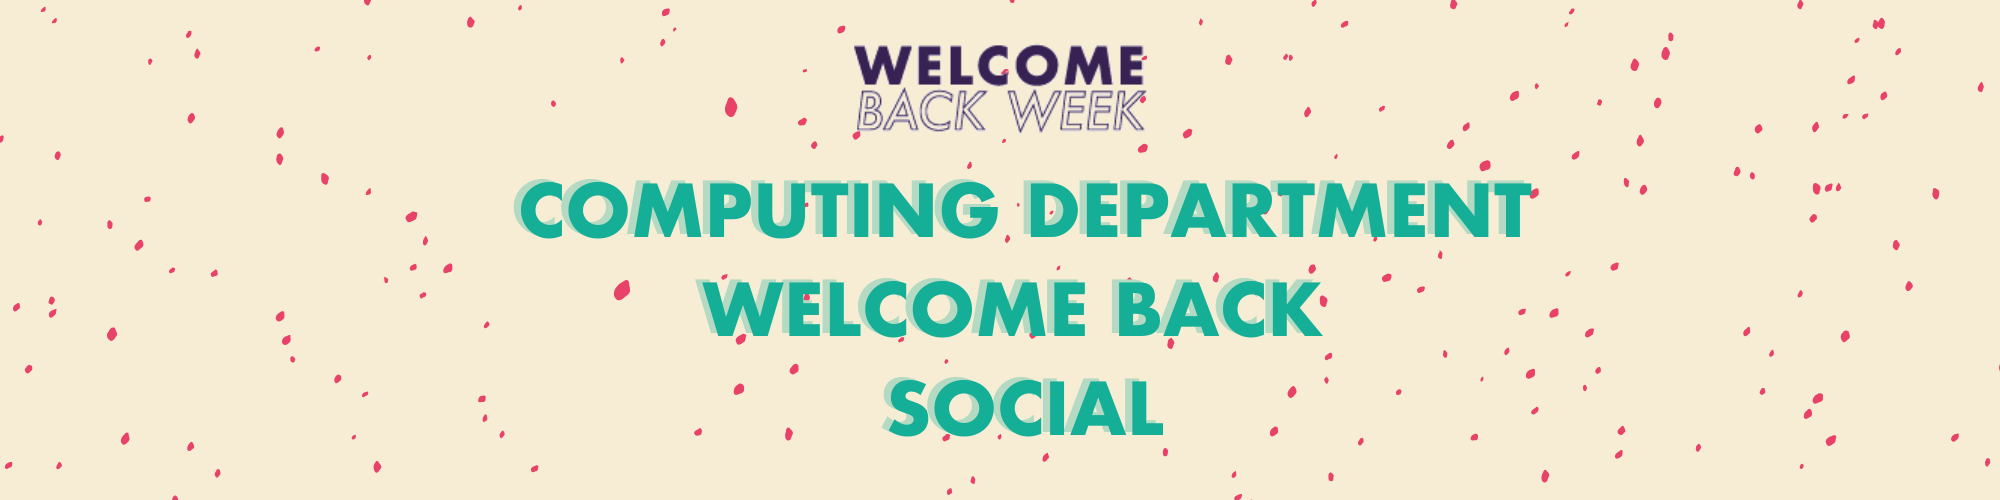 Computing Department Welcome Back Social